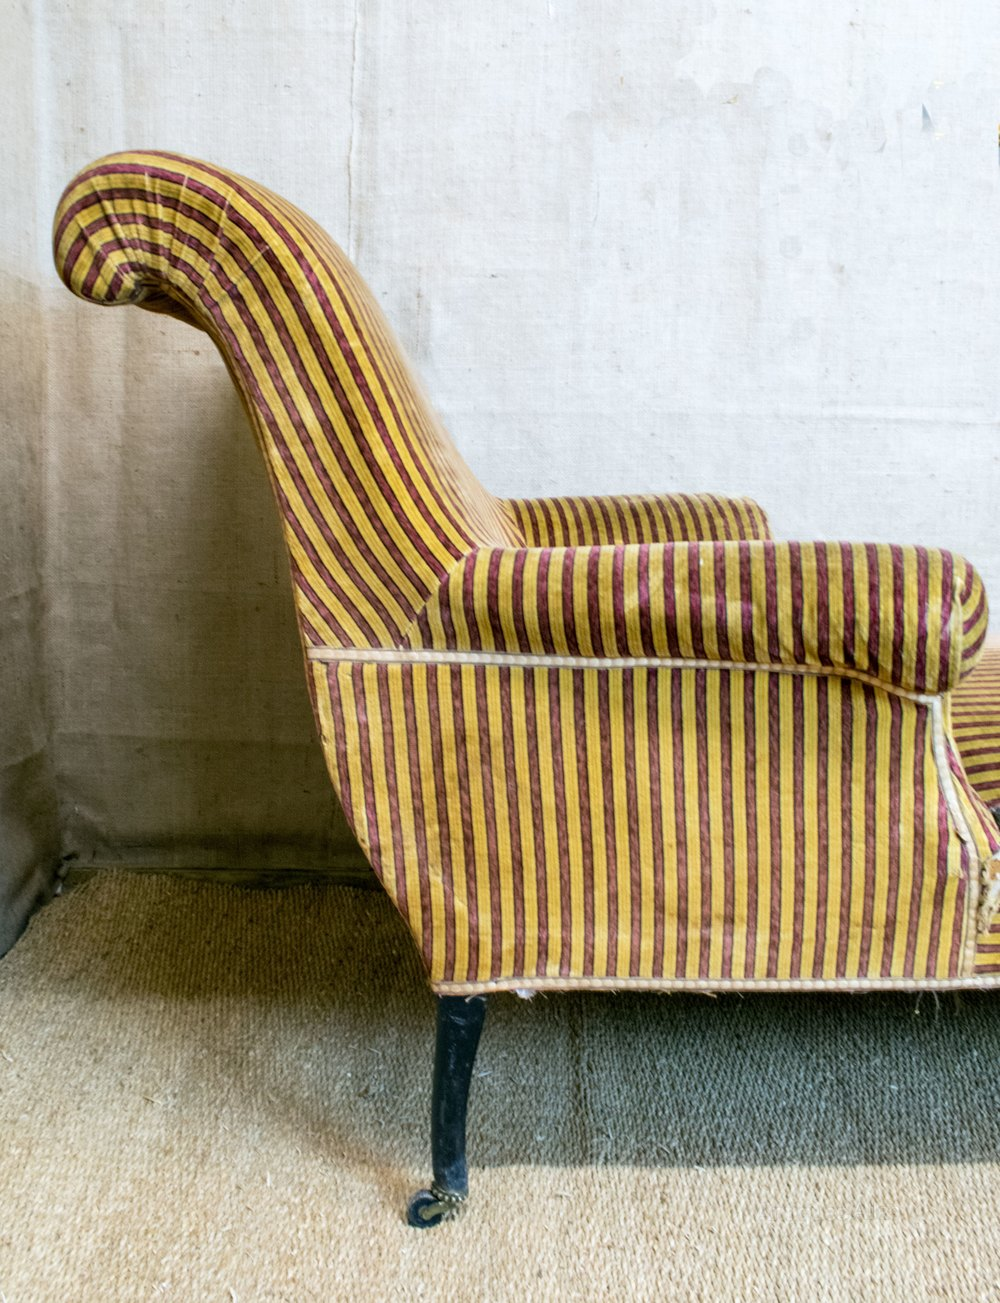 French chaise longue armchair style scroll arms for Chaise longue french